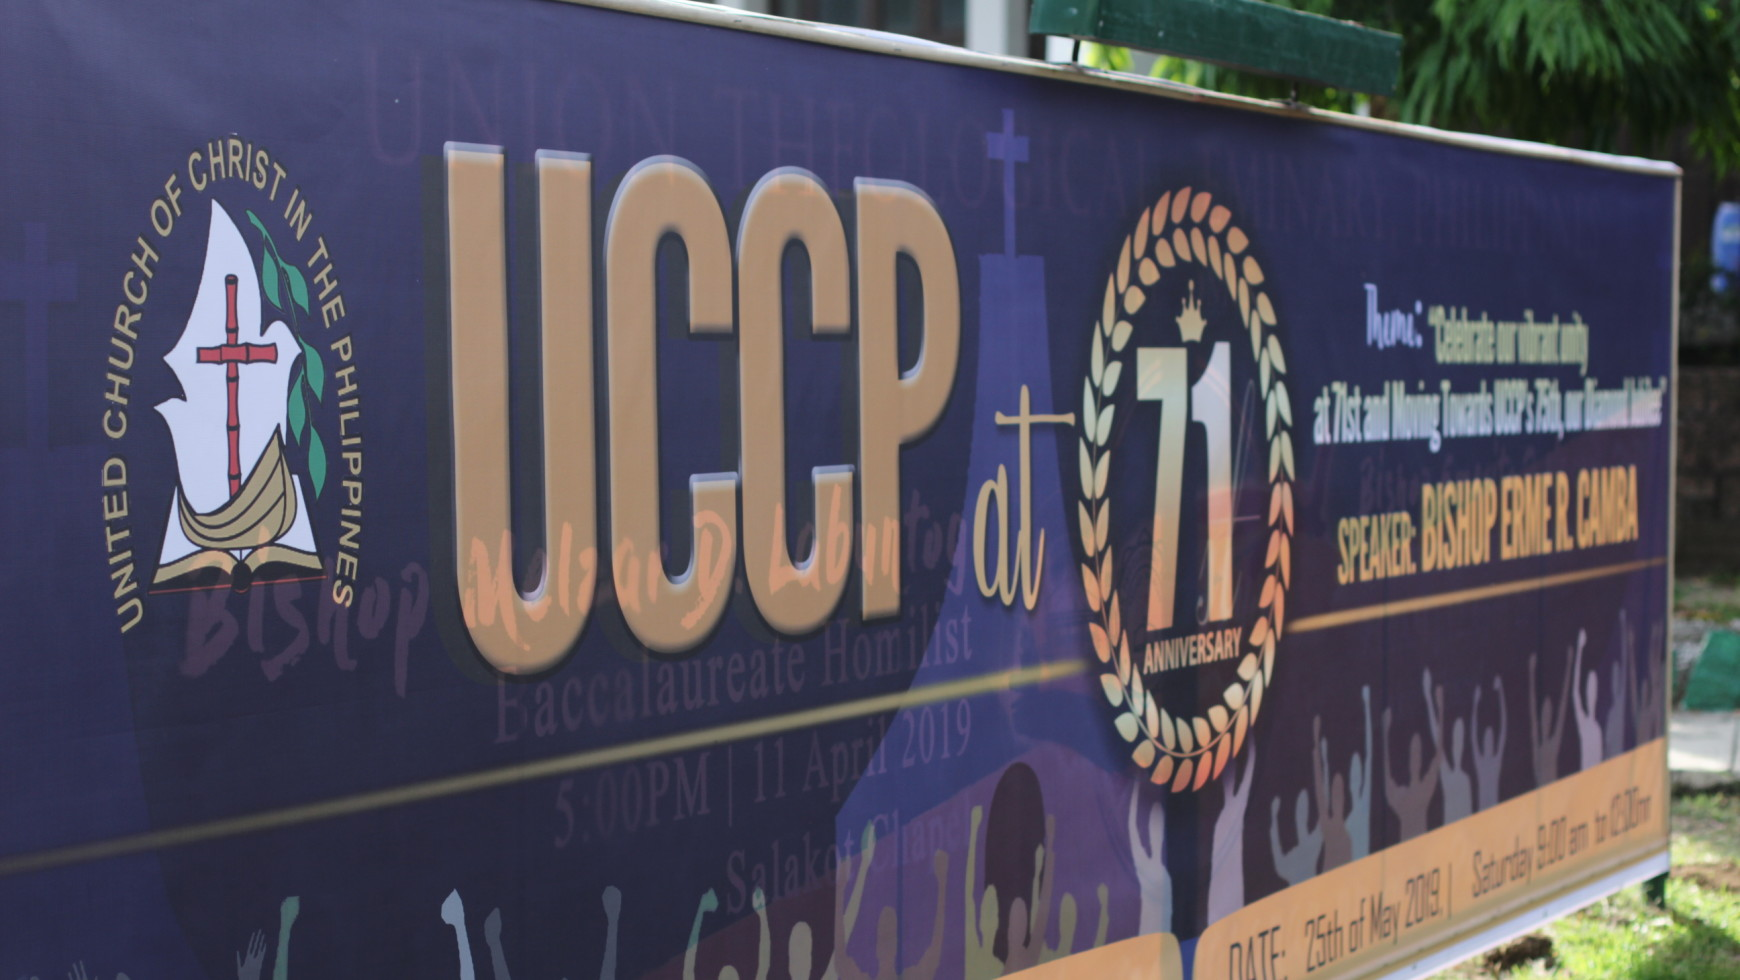 UCCP 71st ANNIVERSARY CELEBRATION